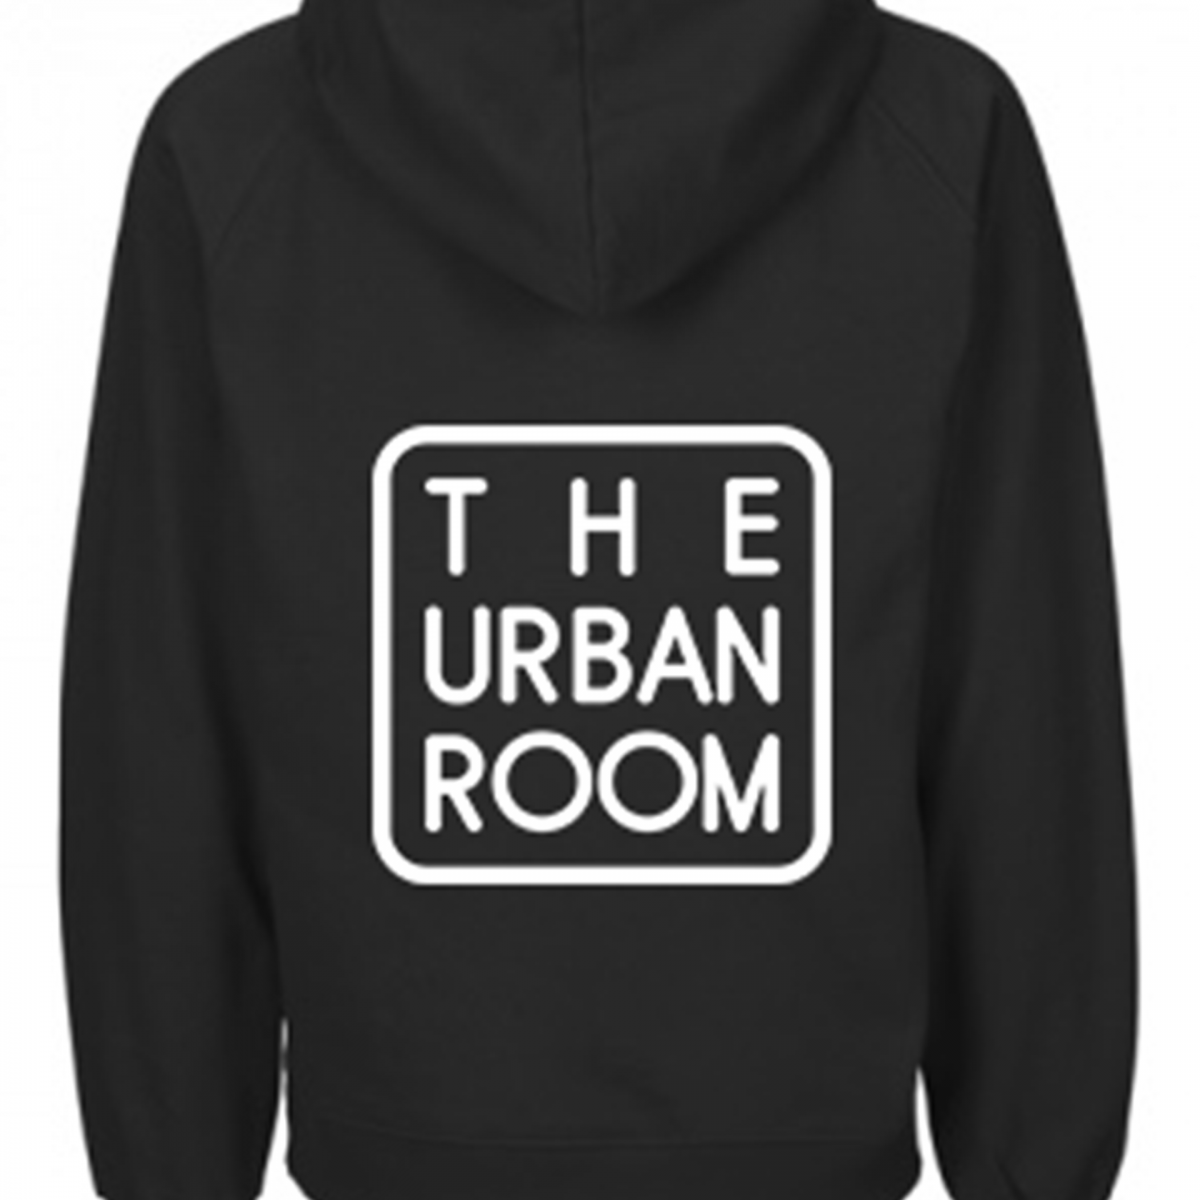 The Urban Room